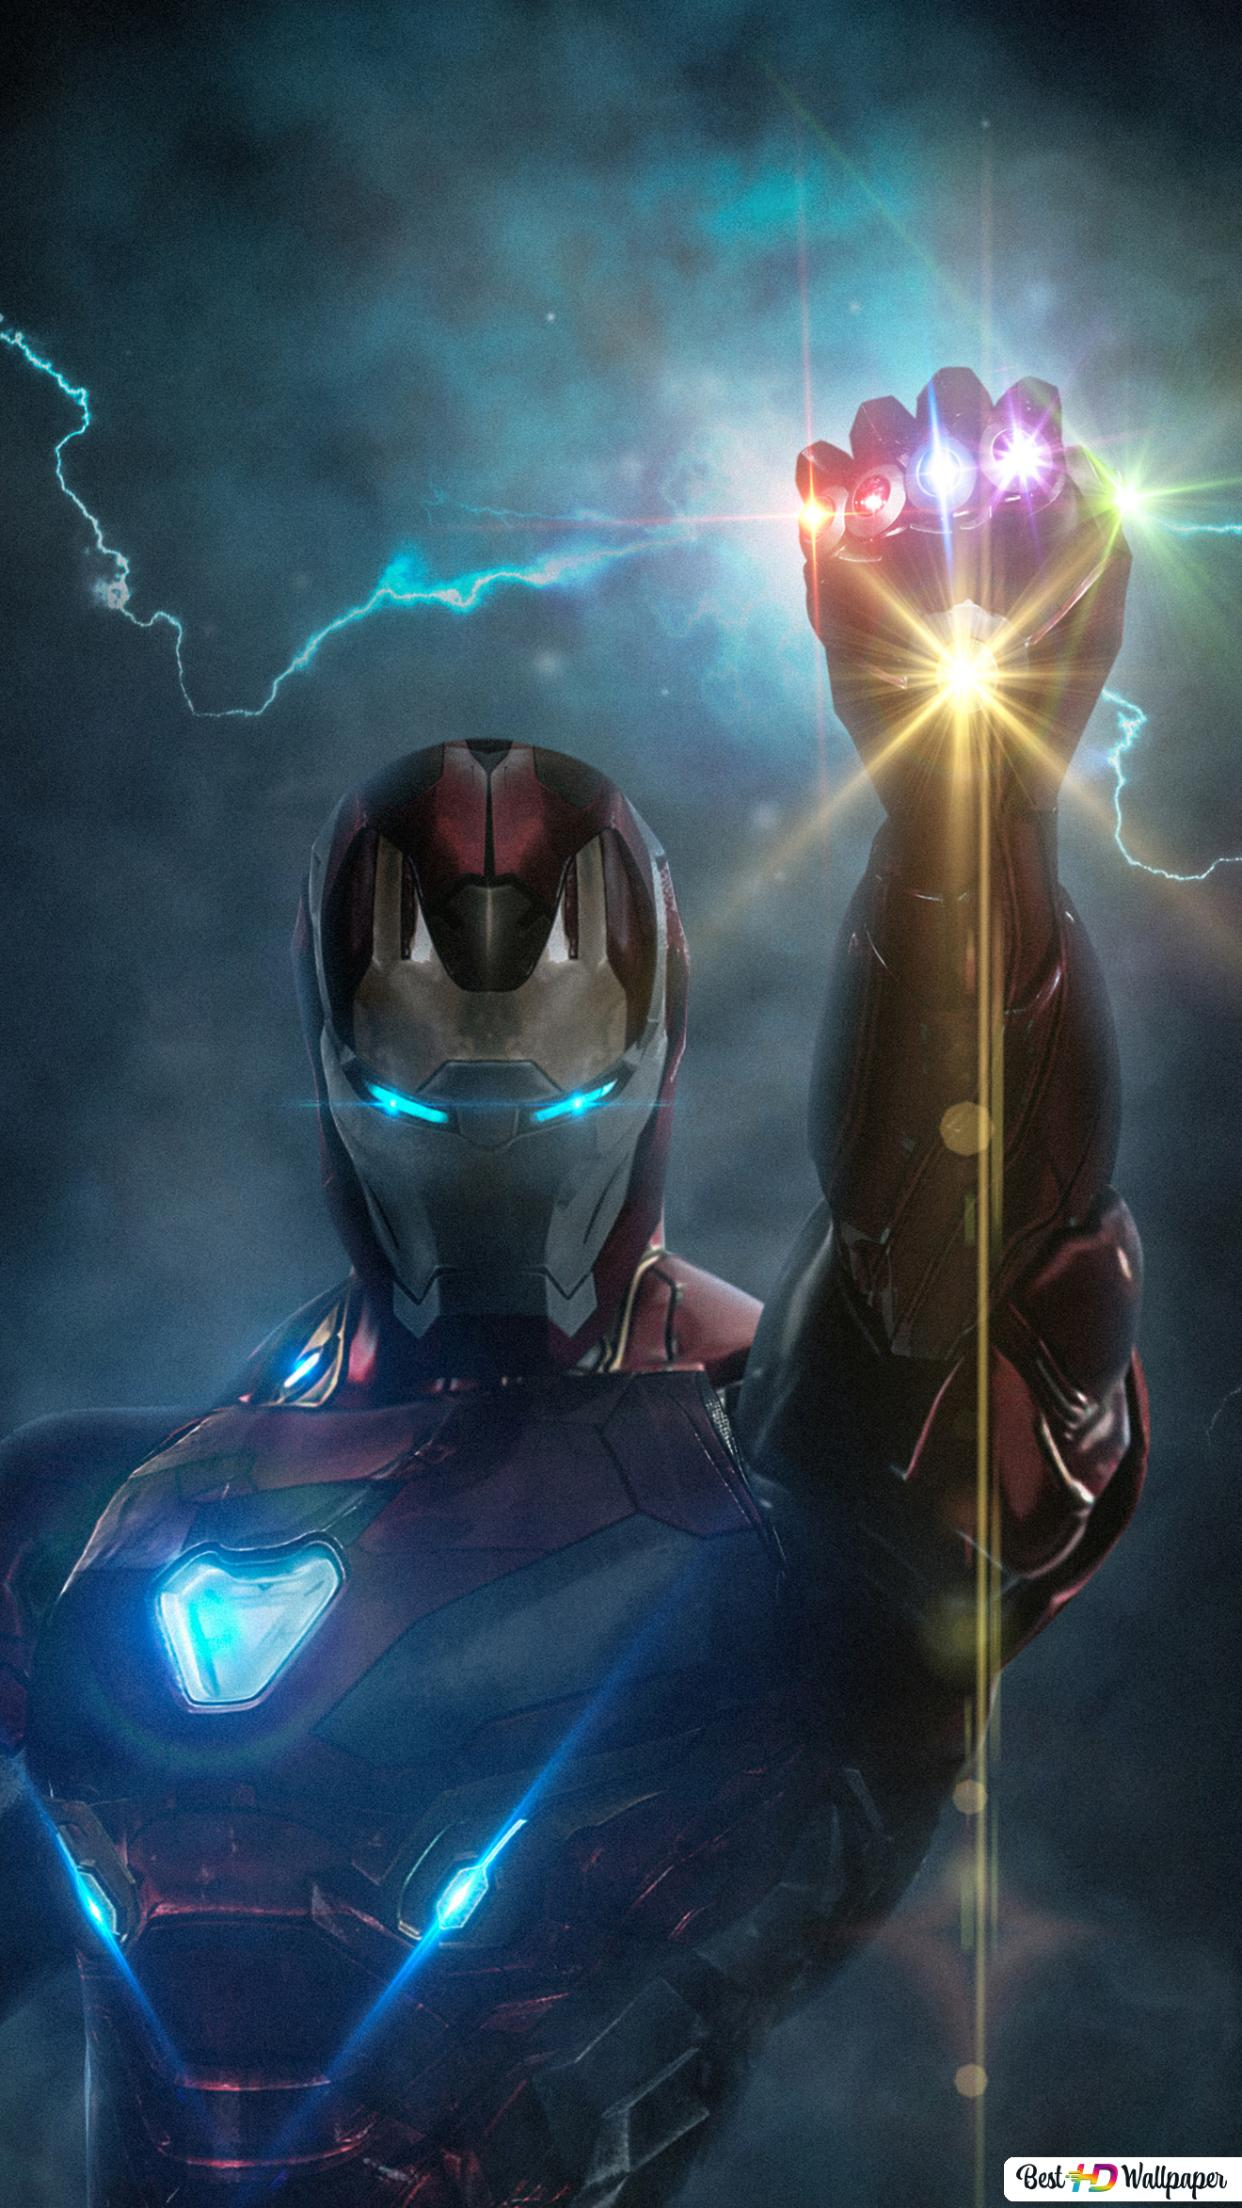 Avengers Endgame Ironman With Infinity Glove Hd Wallpaper Download